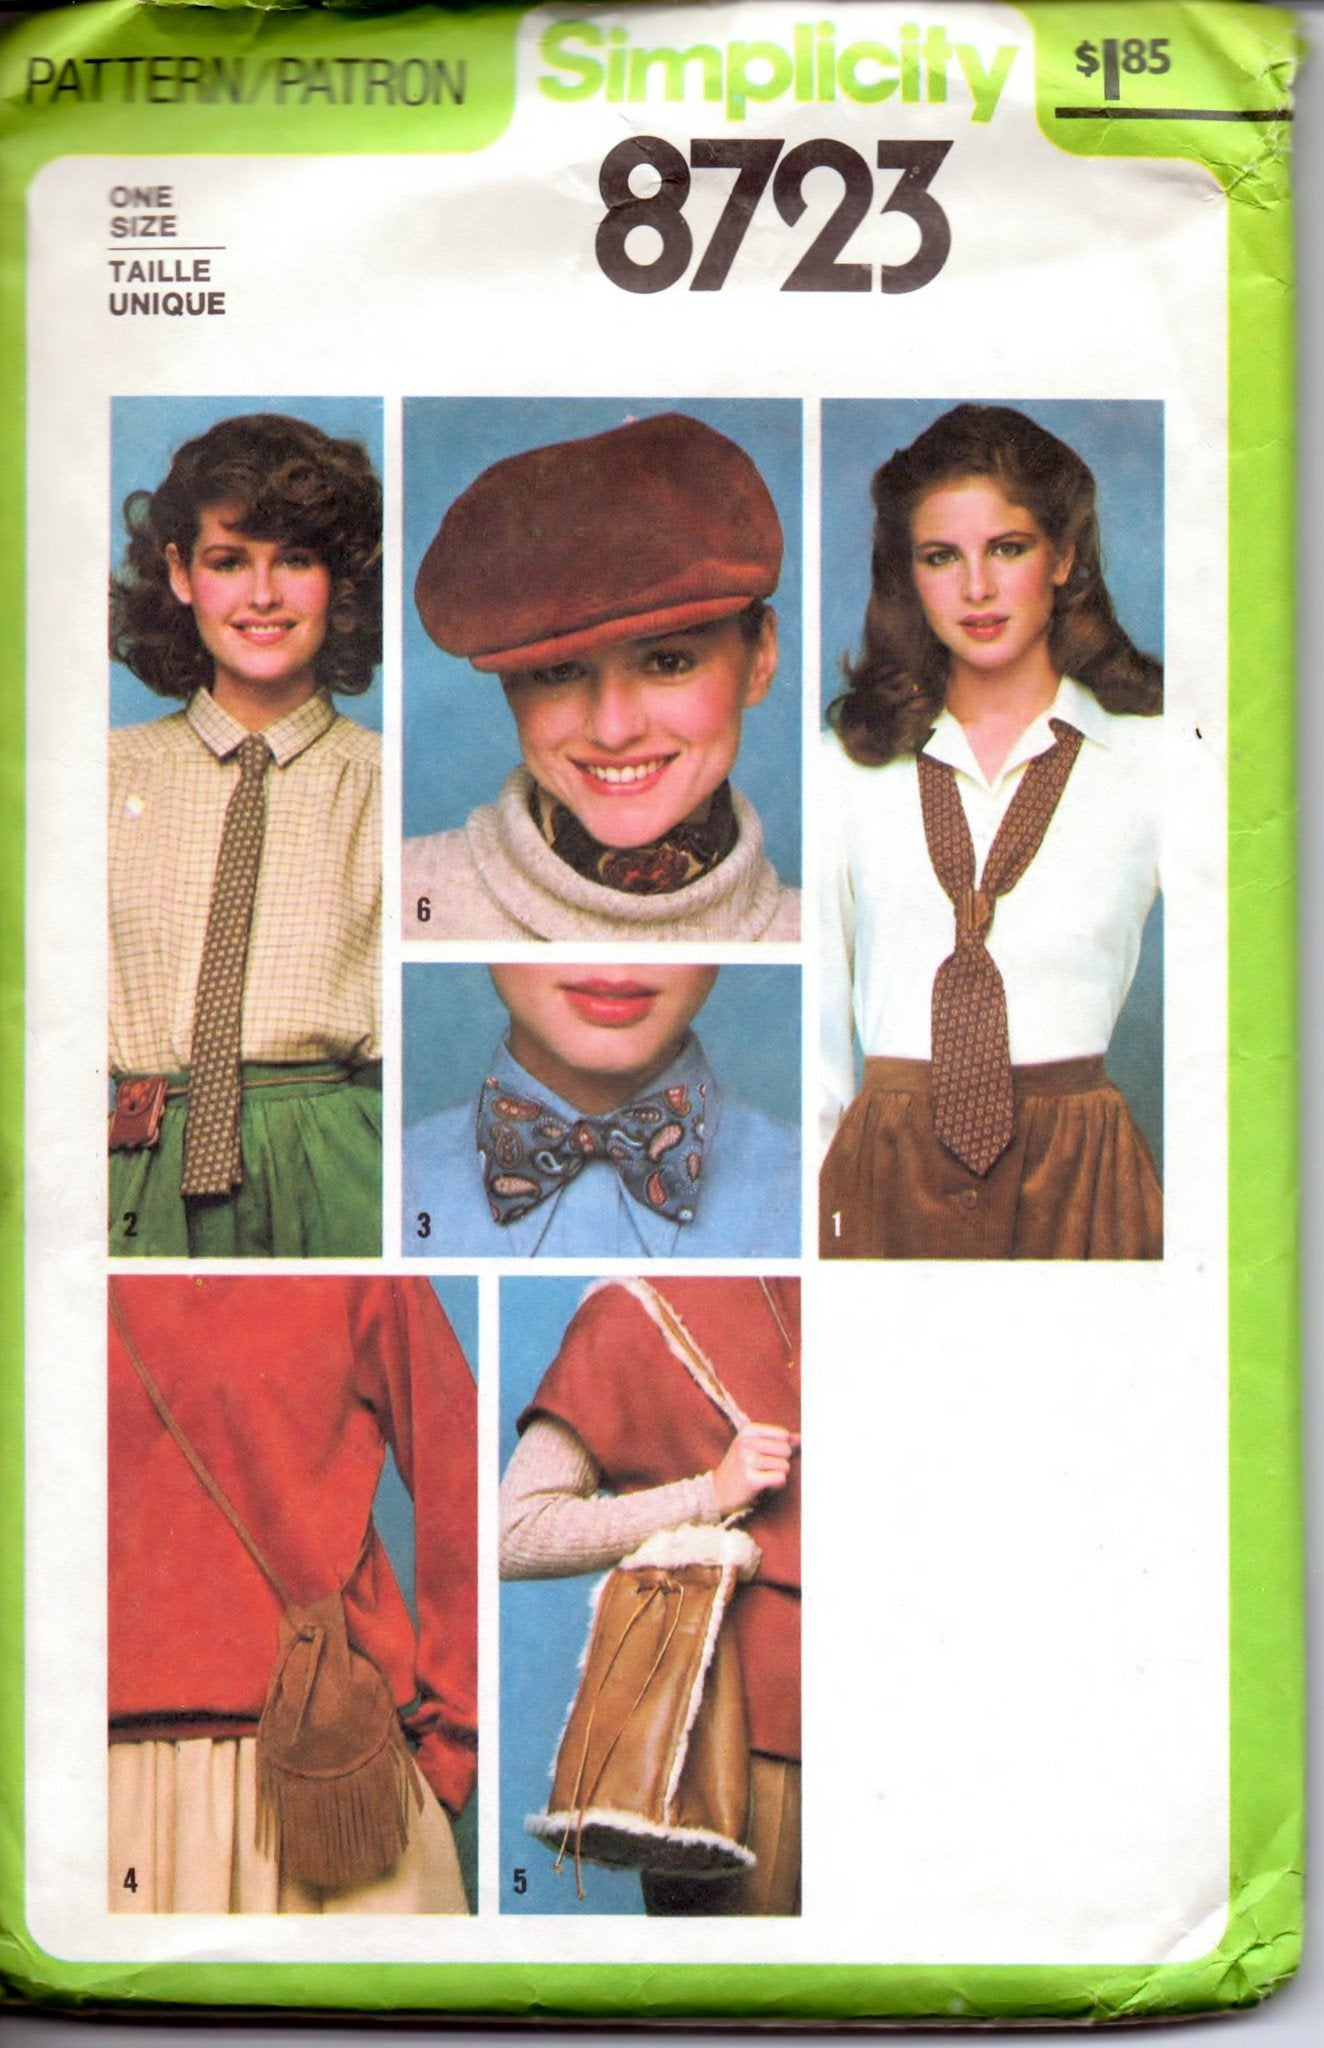 Simplicity 8723 Ladies Accessories Ties Purses Hat Bow Tie Vintage 1970's Sewing Pattern - VintageStitching - Vintage Sewing Patterns